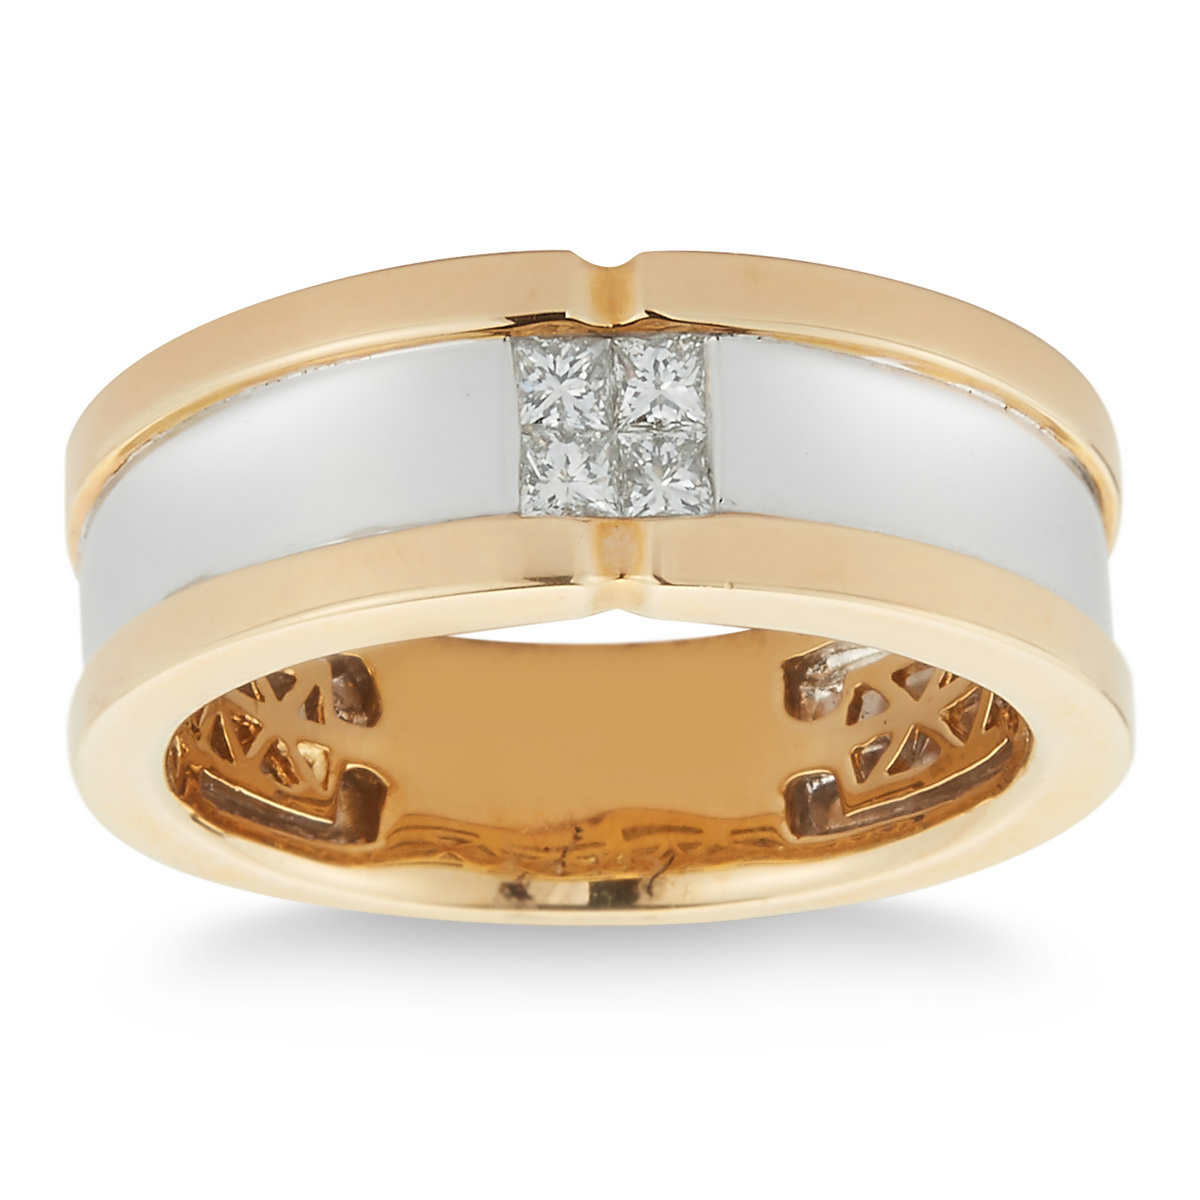 7mm comfort fit wedding ring 18kt two-tone gold